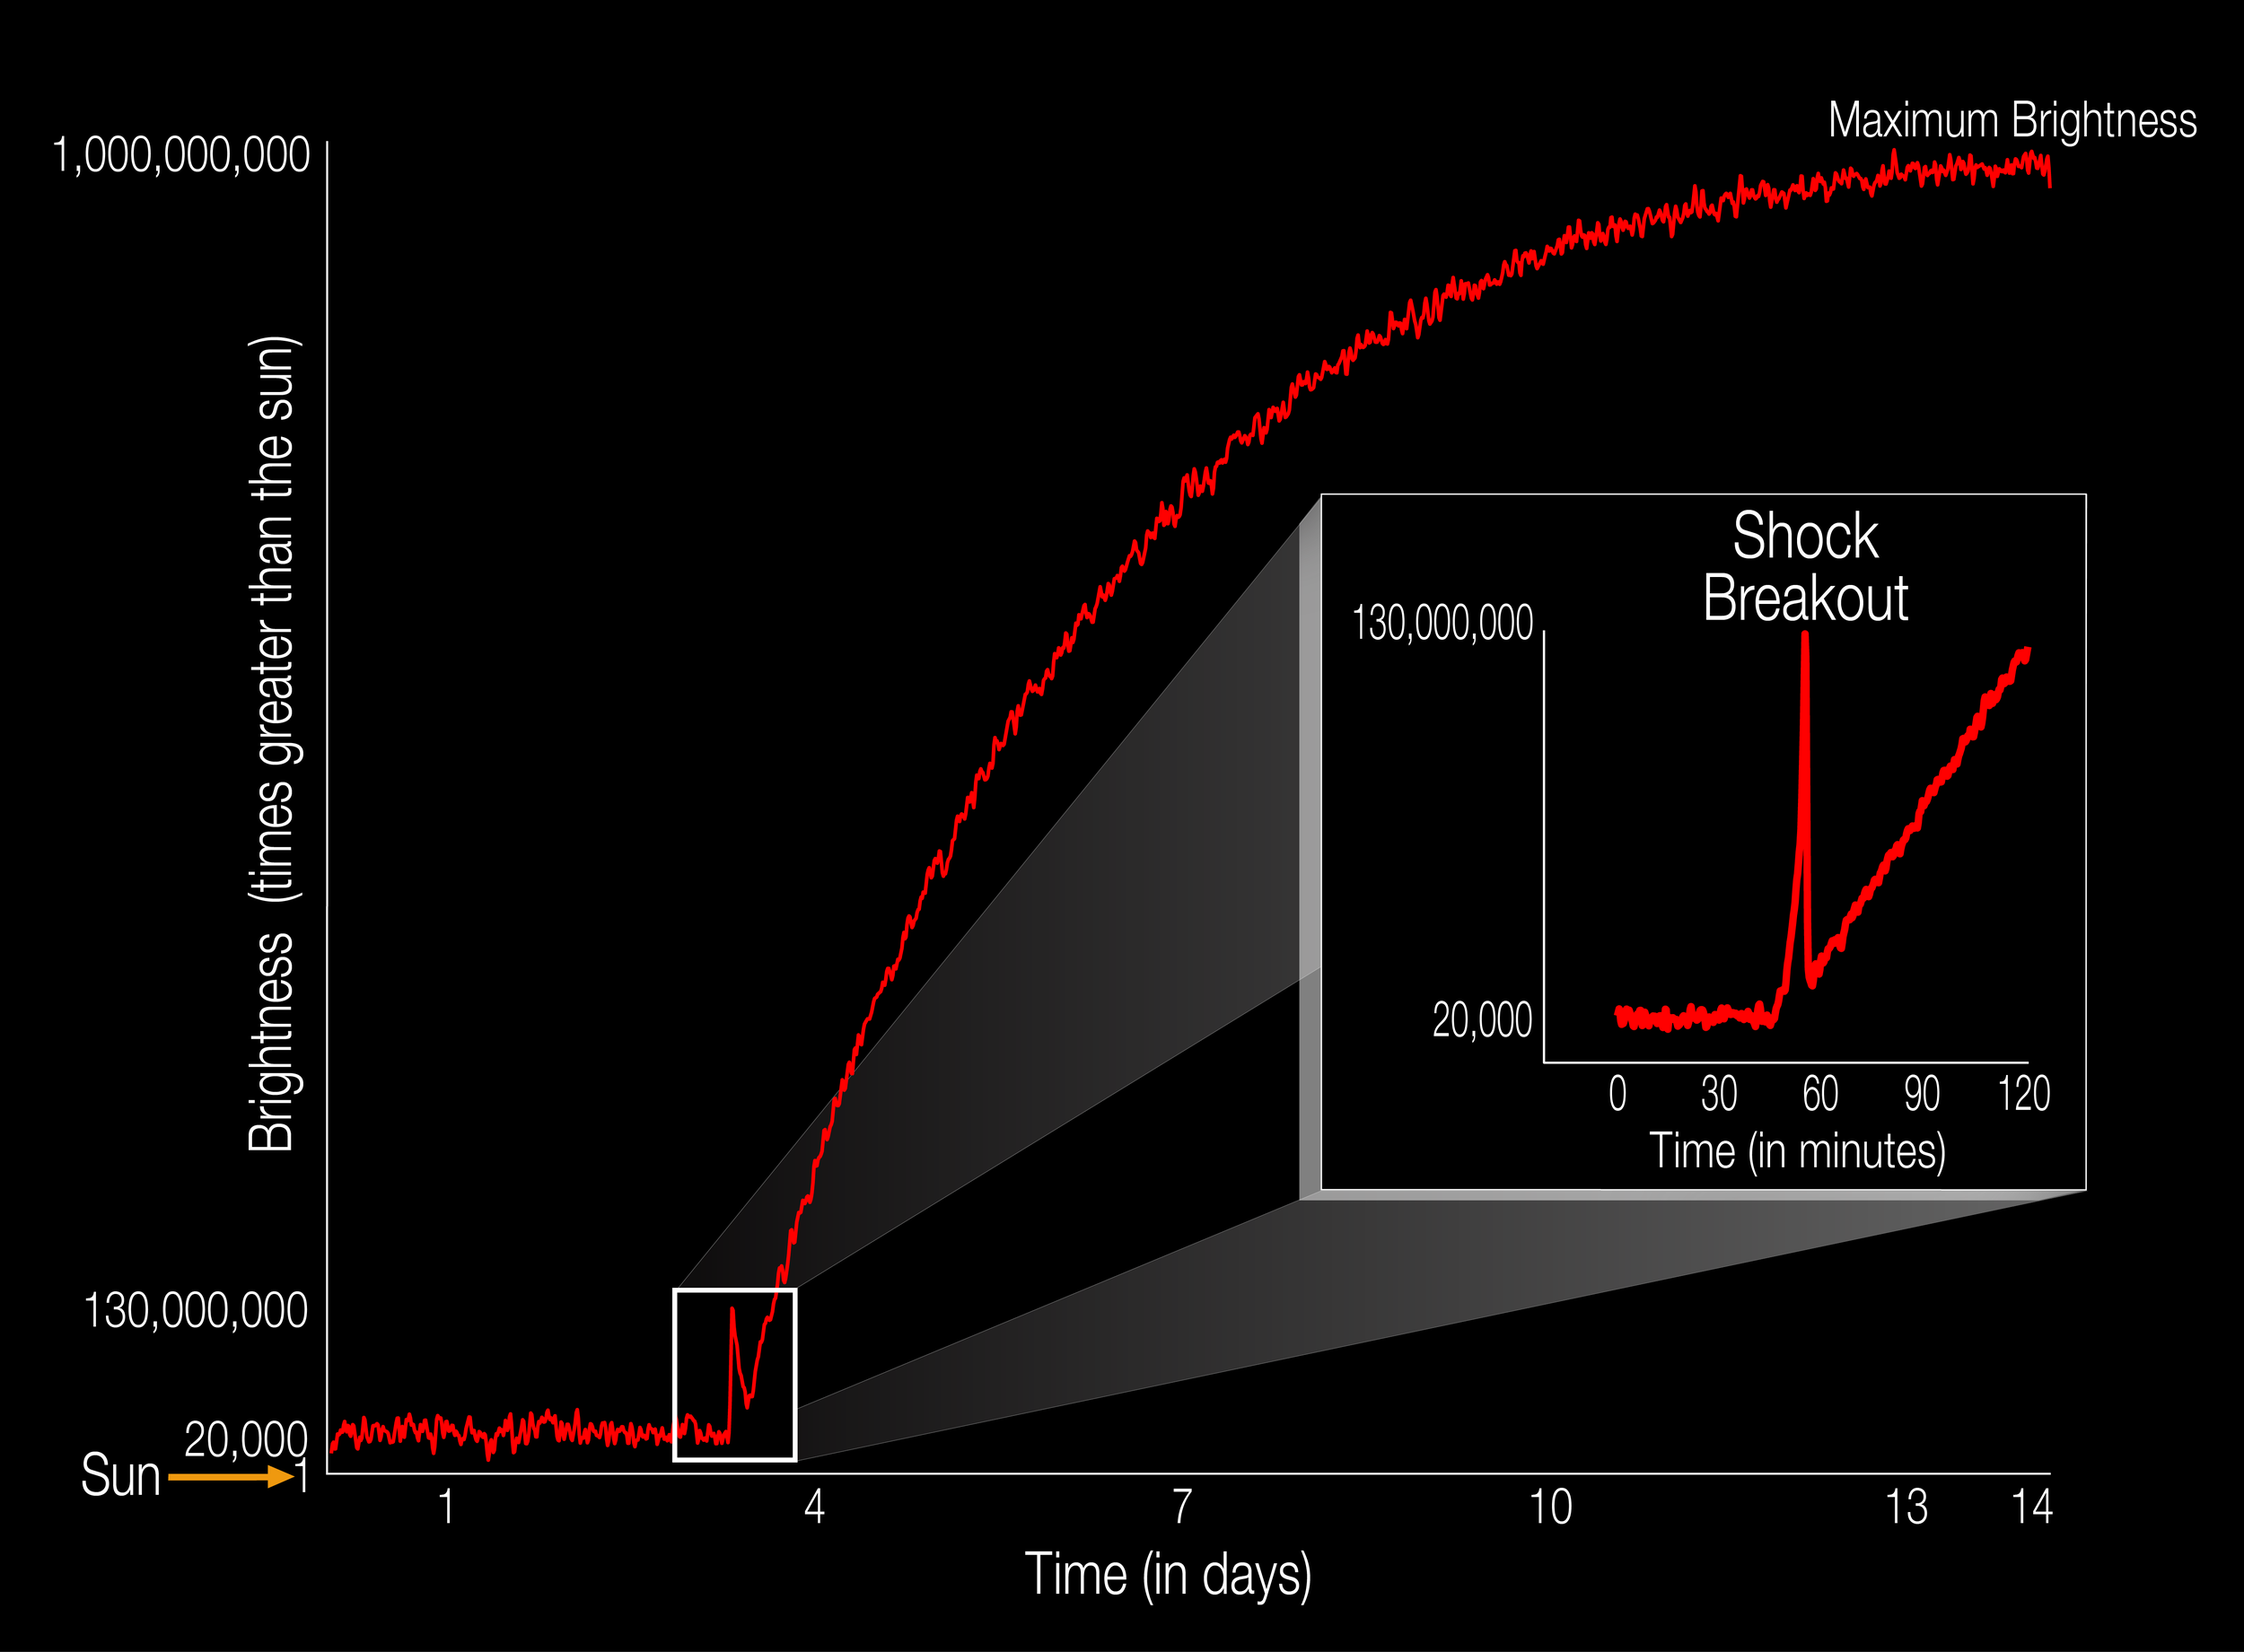 The diagram illustrates the brightness of a supernova event relative to the sun as it unfolds. For the first time, a supernova shockwave has been observed in the optical wavelength or visible light as it reaches the surface of the star. This early flash of light is called a shock breakout. The explosive death of this star, called KSN 2011d, as it reaches its maximum brightness takes 14 days. The shock breakout itself lasts only about 20 minutes, so catching the flash of energy is an investigative milestone for astronomers. The unceasing gaze of NASA's Kepler space telescope allowed astronomers to see, at last, this early moment as the star blows itself to bits. Supernovae like these — known as Type II — begin when the internal furnace of a star runs out of nuclear fuel causing its core to collapse as gravity takes over. This type of star is called a red supergiant star and it is 20,000 times brighter than our sun. As the supergiant star goes supernova, the energy traveling from the core reaches the surfaces with a burst of light that is 130,000,000 times brighter than the sun. The star continues to explode and grow reaching maximum brightness that is about 1,000,000,000 times brighter than the sun. - Image   Credits: NASA Ames/W. Stenzel